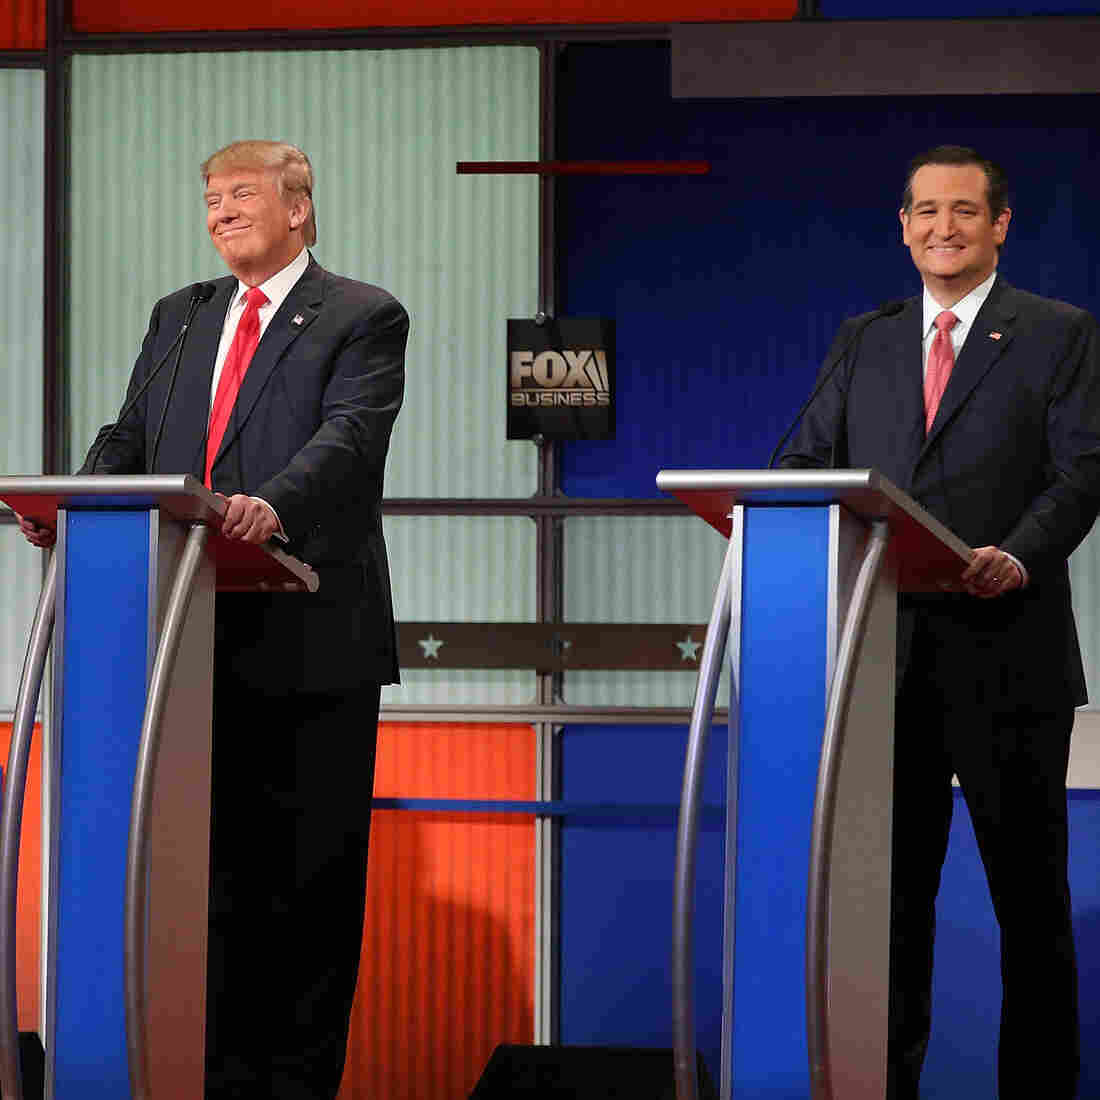 Republican presidential candidates, from left to right, Sen. Marco Rubio, R-Fla., Donald Trump and Sen. Ted Cruz, R-Texas participate in the sixth GOP debate on Jan. 14 in North Charleston, S.C.